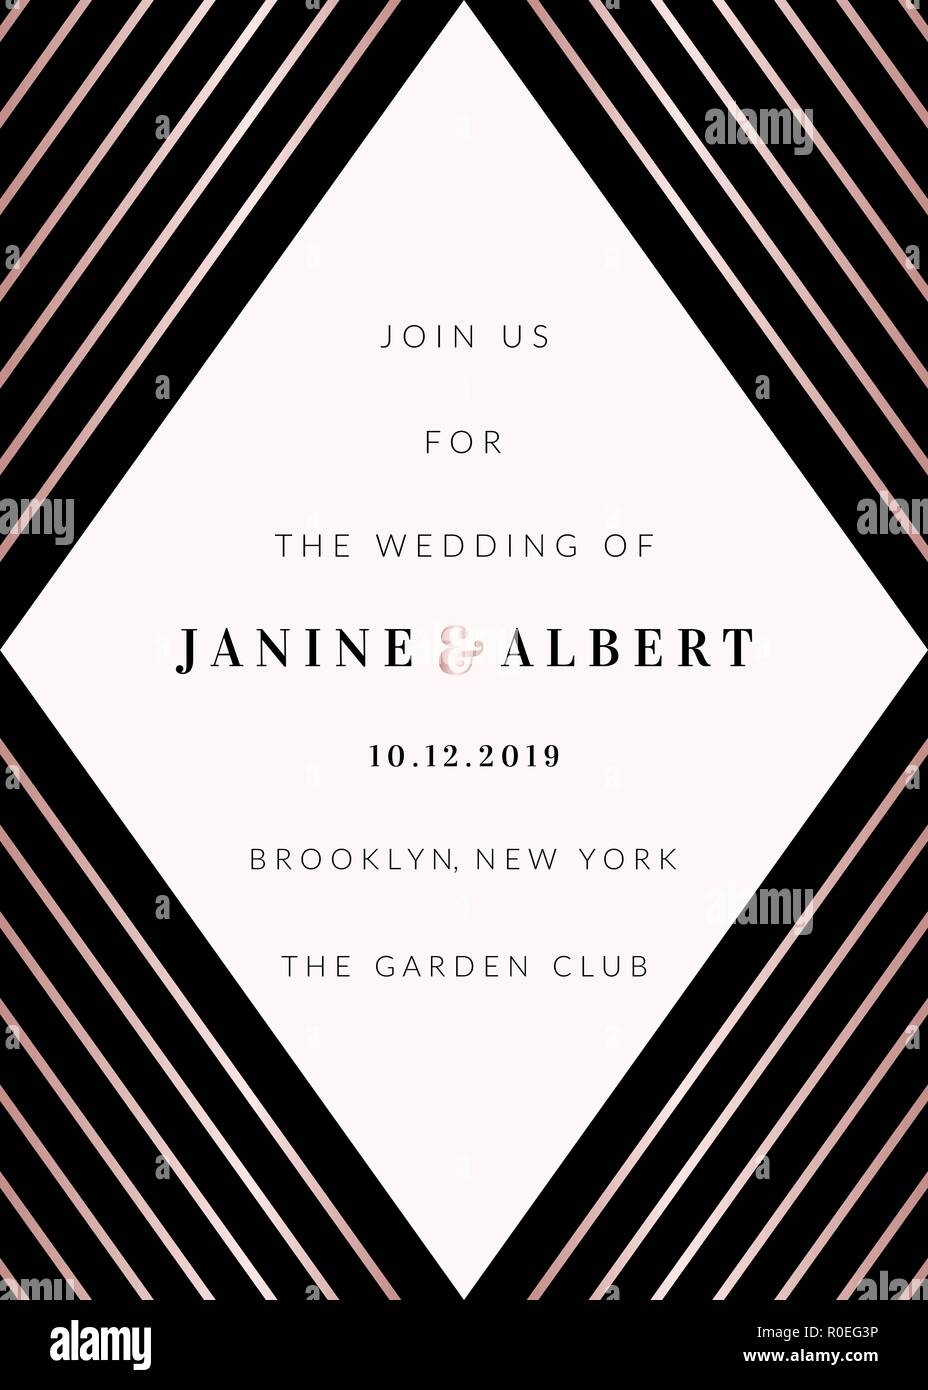 Wedding invitation template with geometric elements in black and white, rose  gold details, sample text layout Stock Vector Image & Art - Alamy